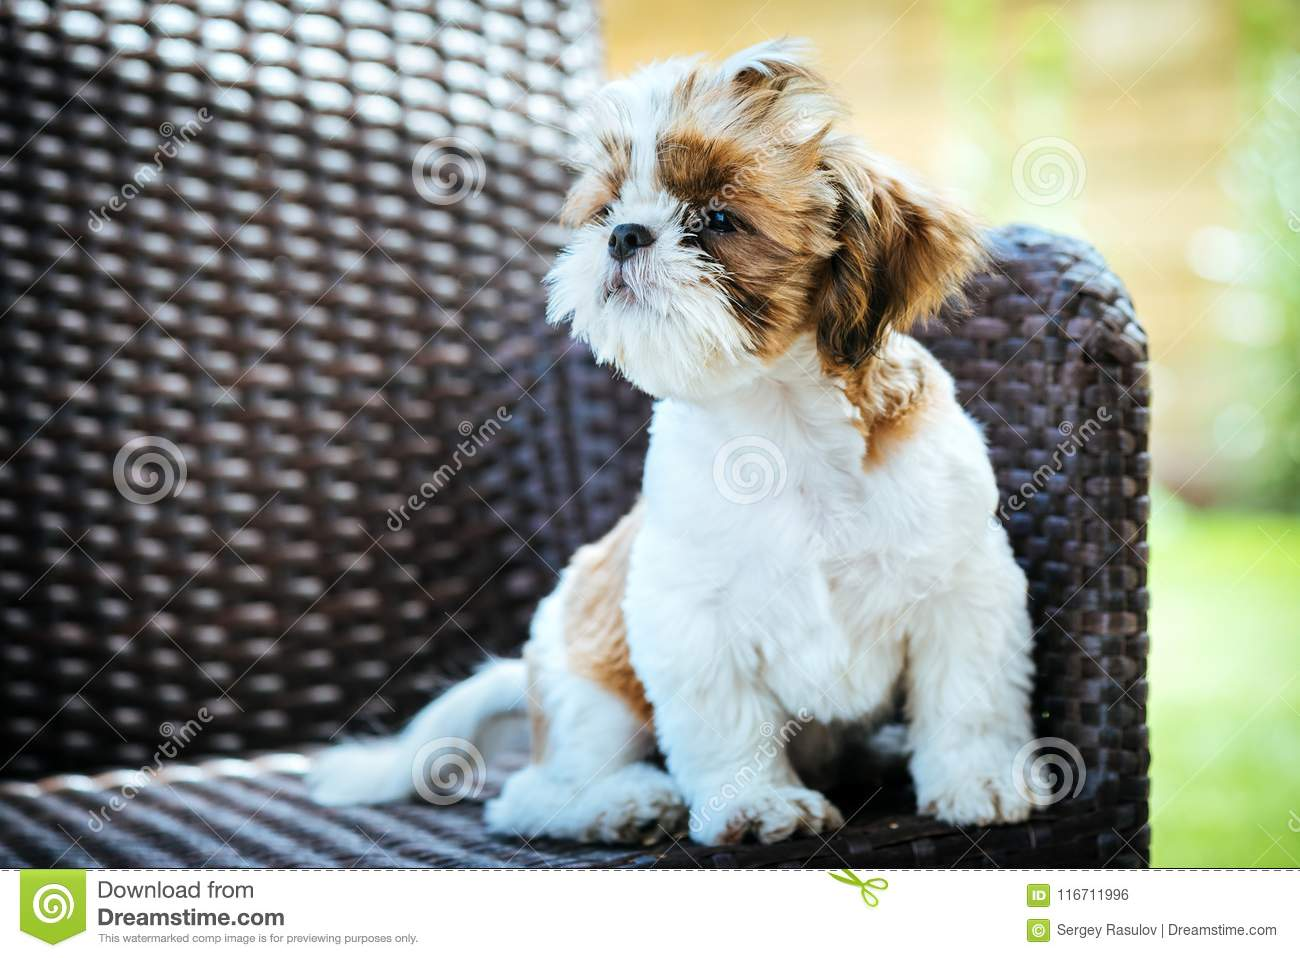 Fabulous Dog Sitting Outdoor And Posing On Wicker Chair Stock Photo Interior Design Ideas Tzicisoteloinfo